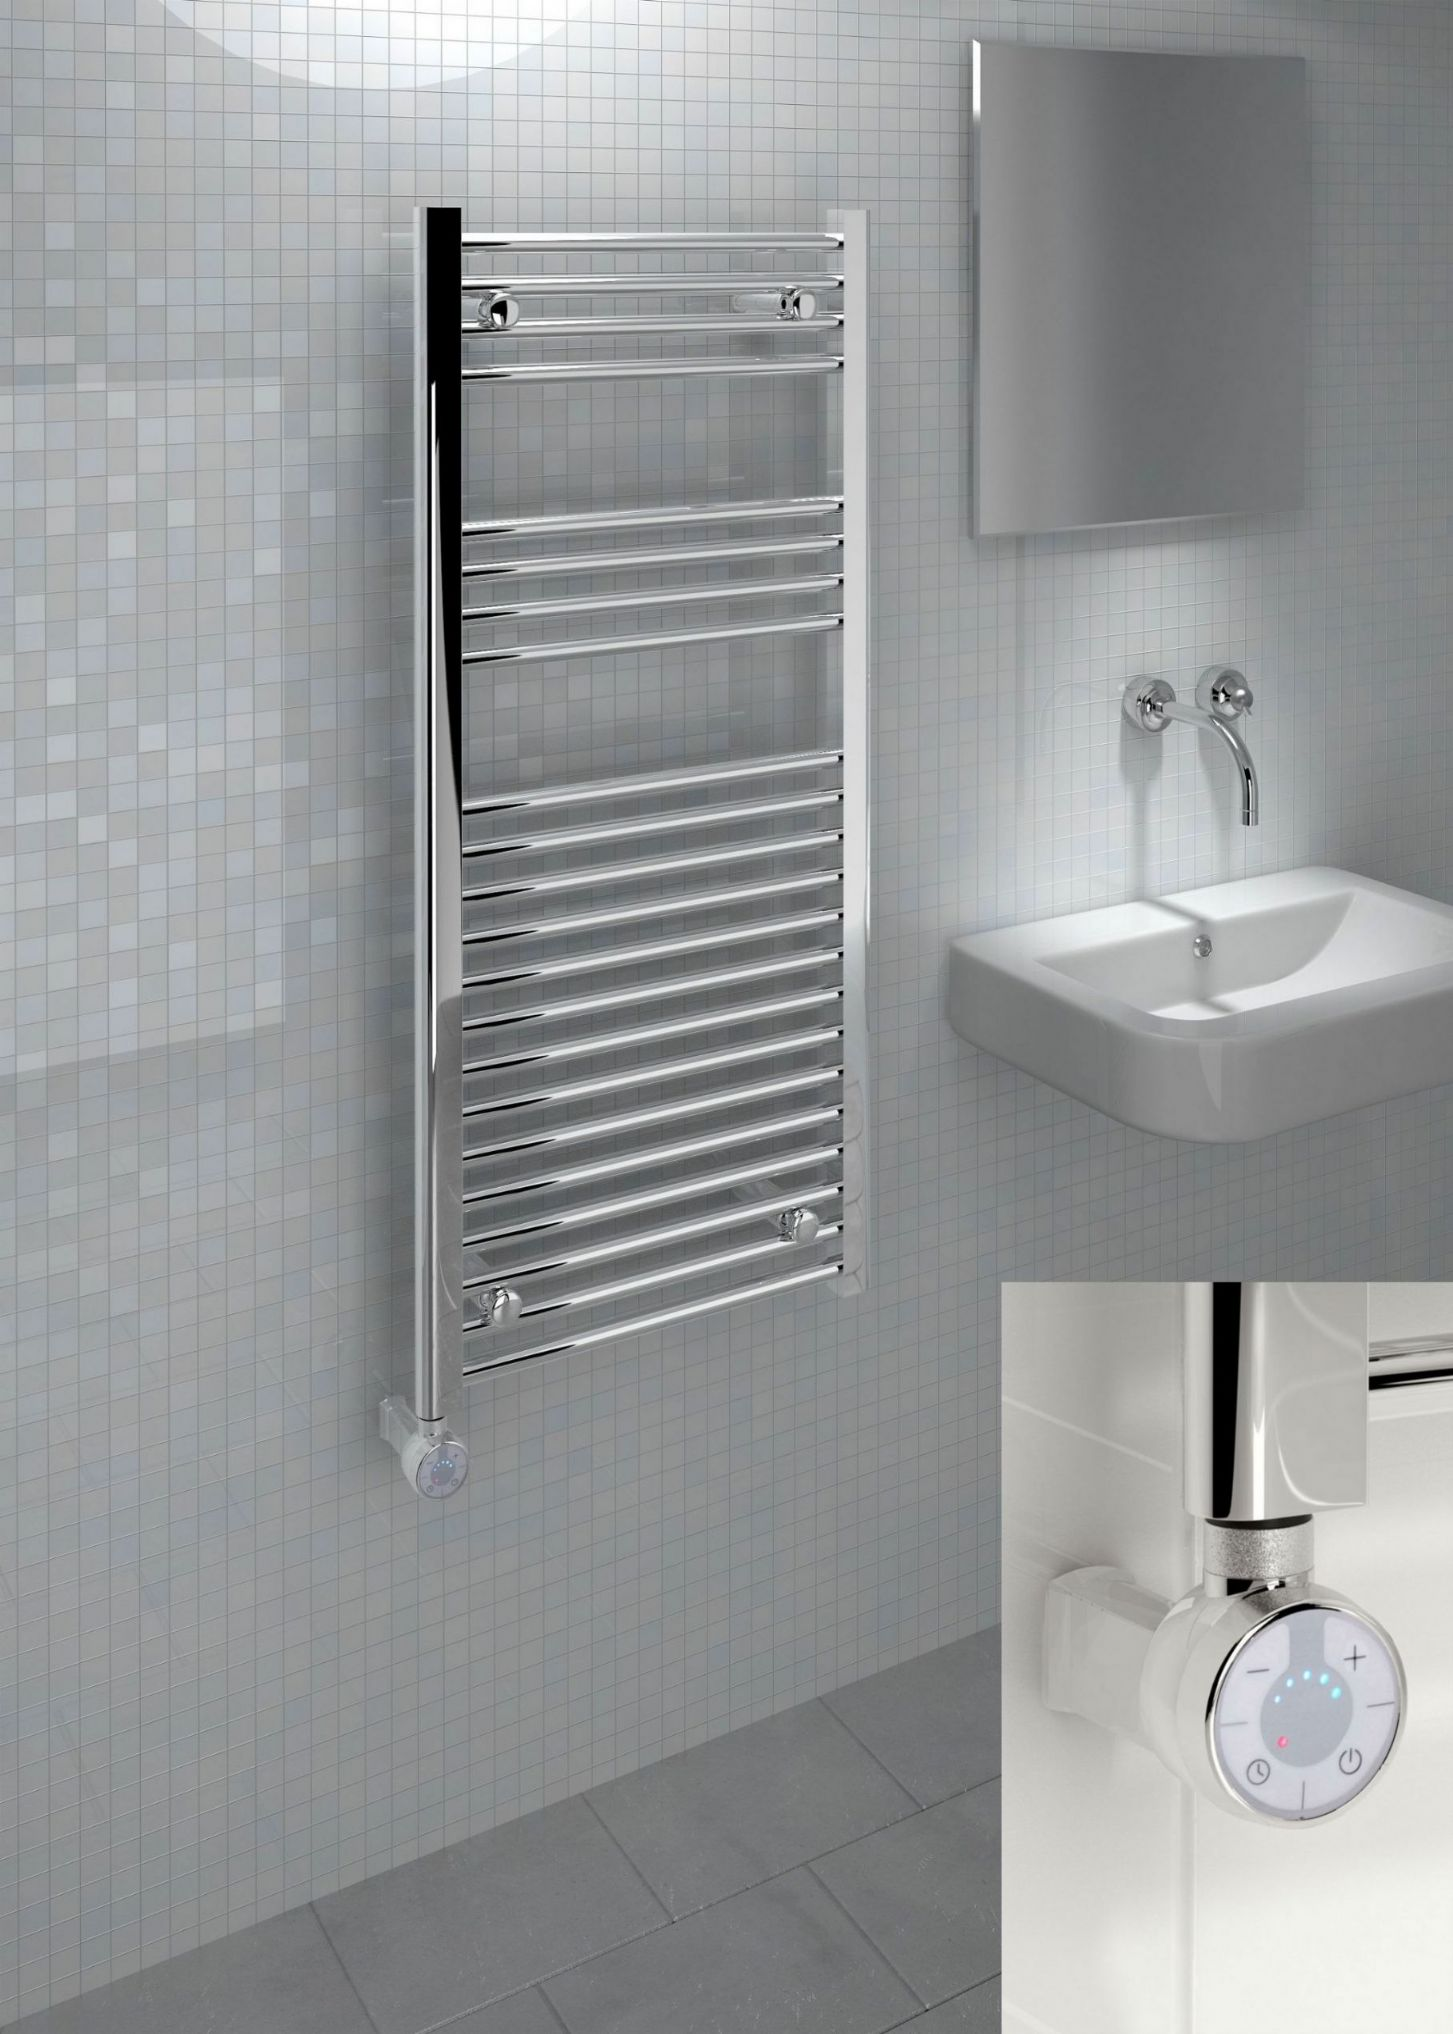 Kudox Thermostatic Electric Towel Rail Straight 500mm x 1100mm Chrome 5060235347504